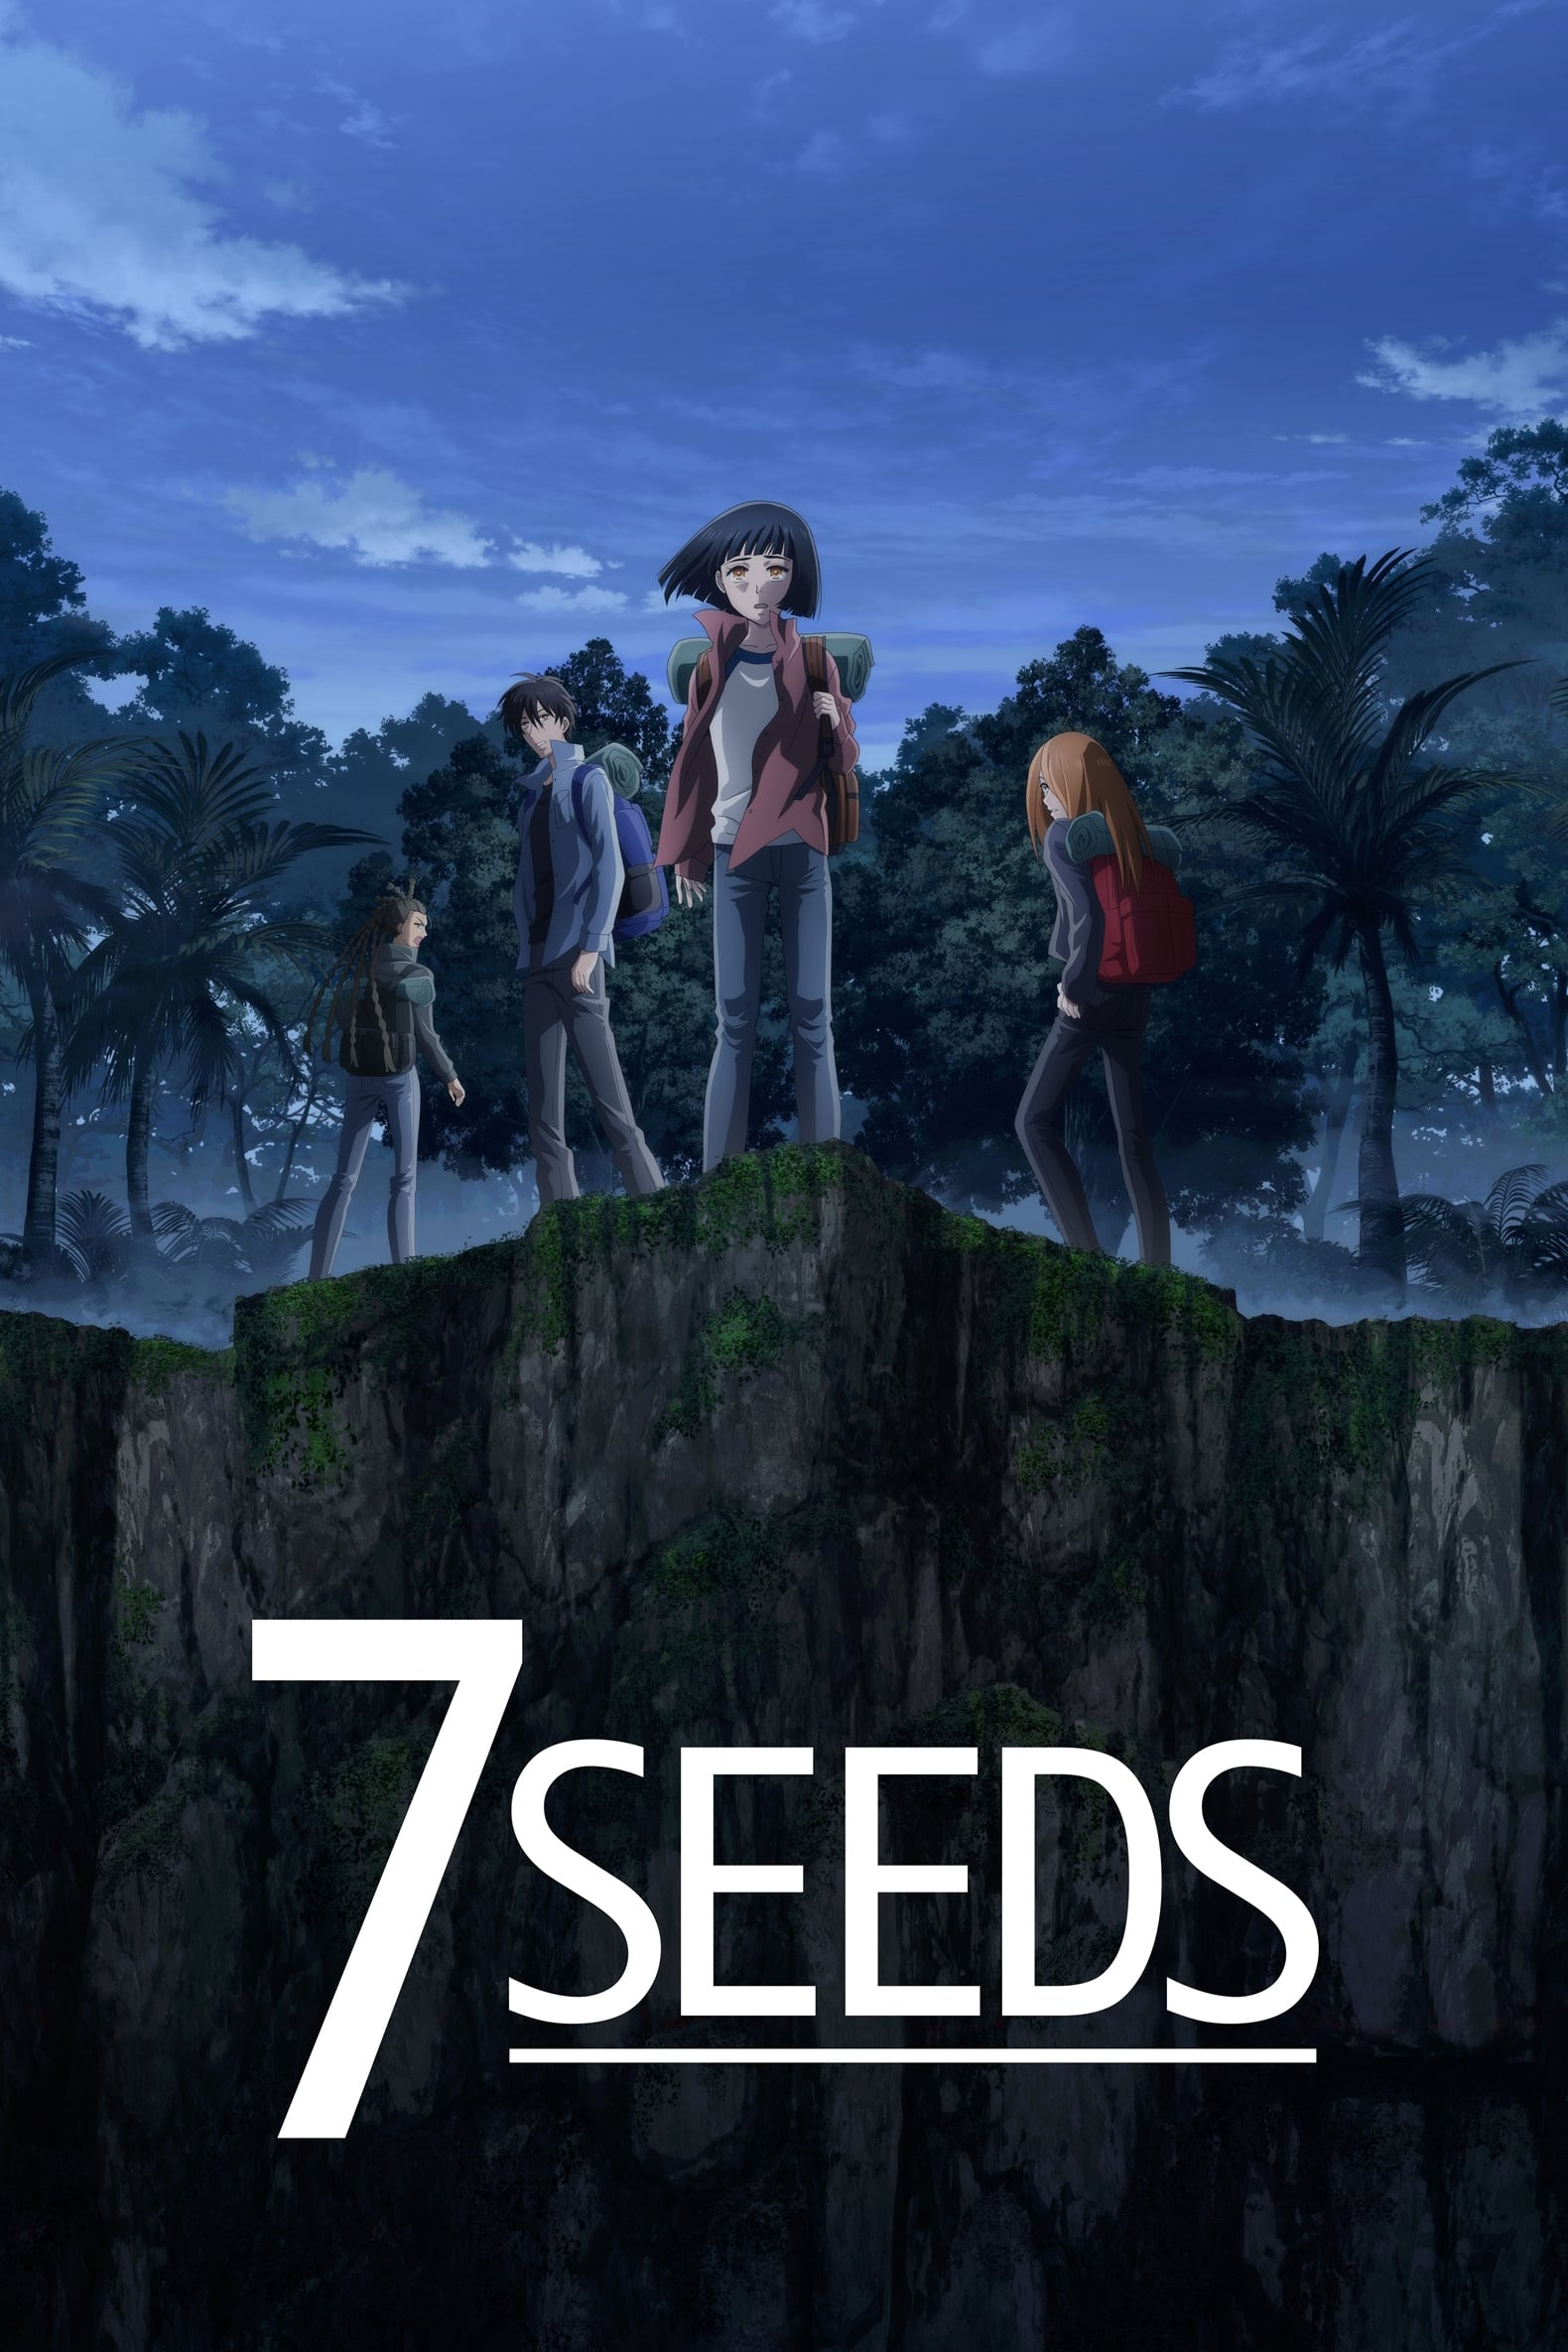 7SEEDS Poster